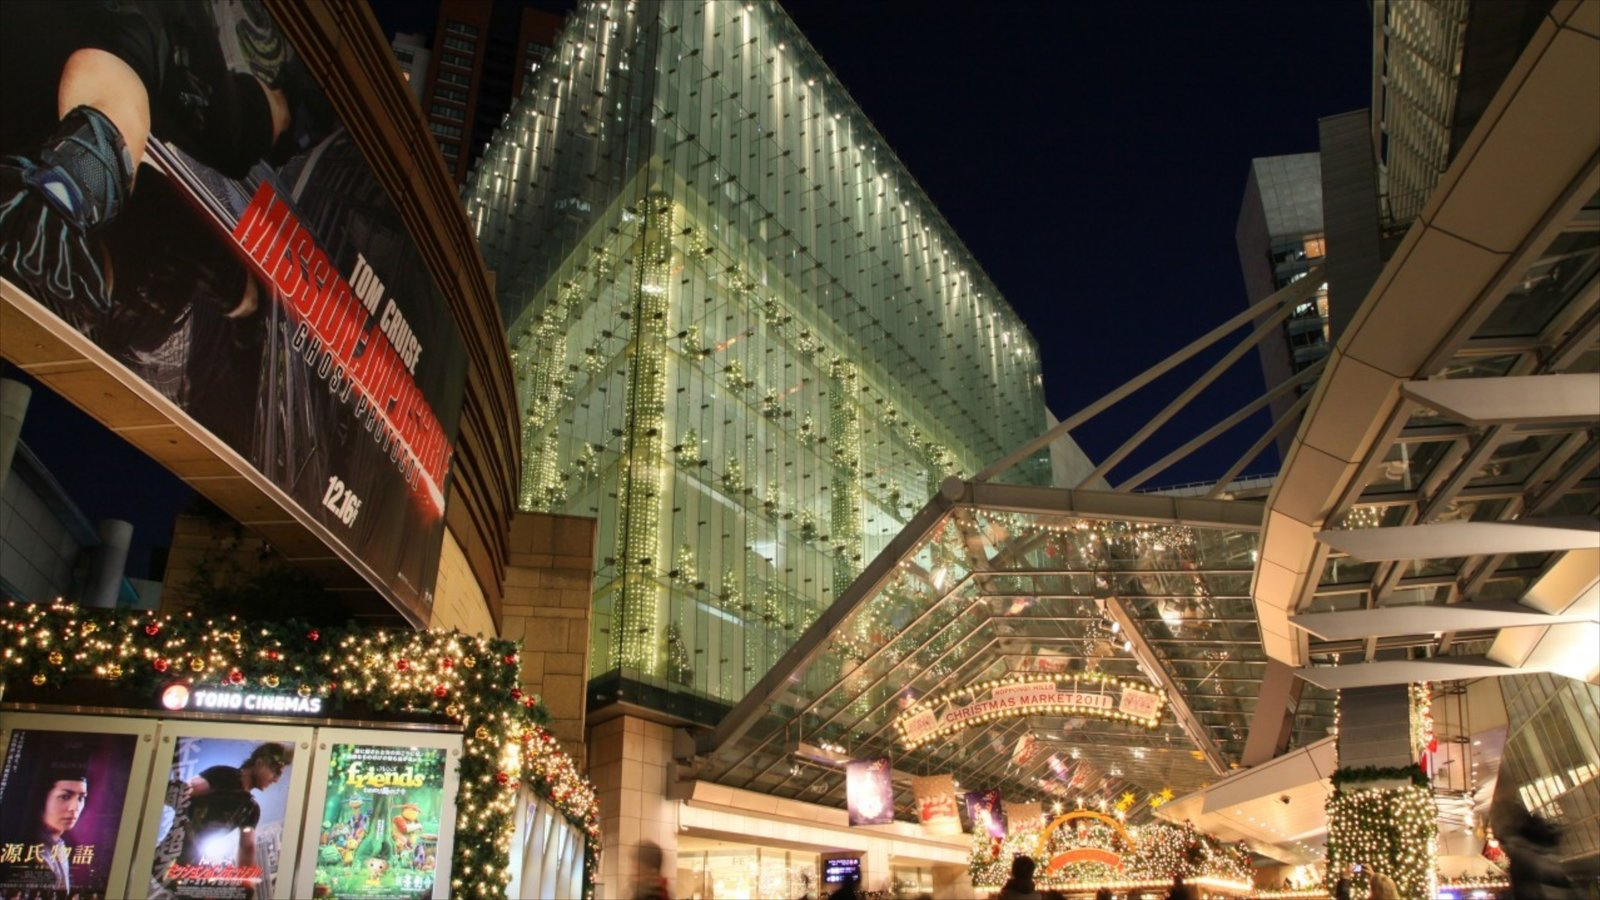 Roppongi Hills which includes a city and night scenes